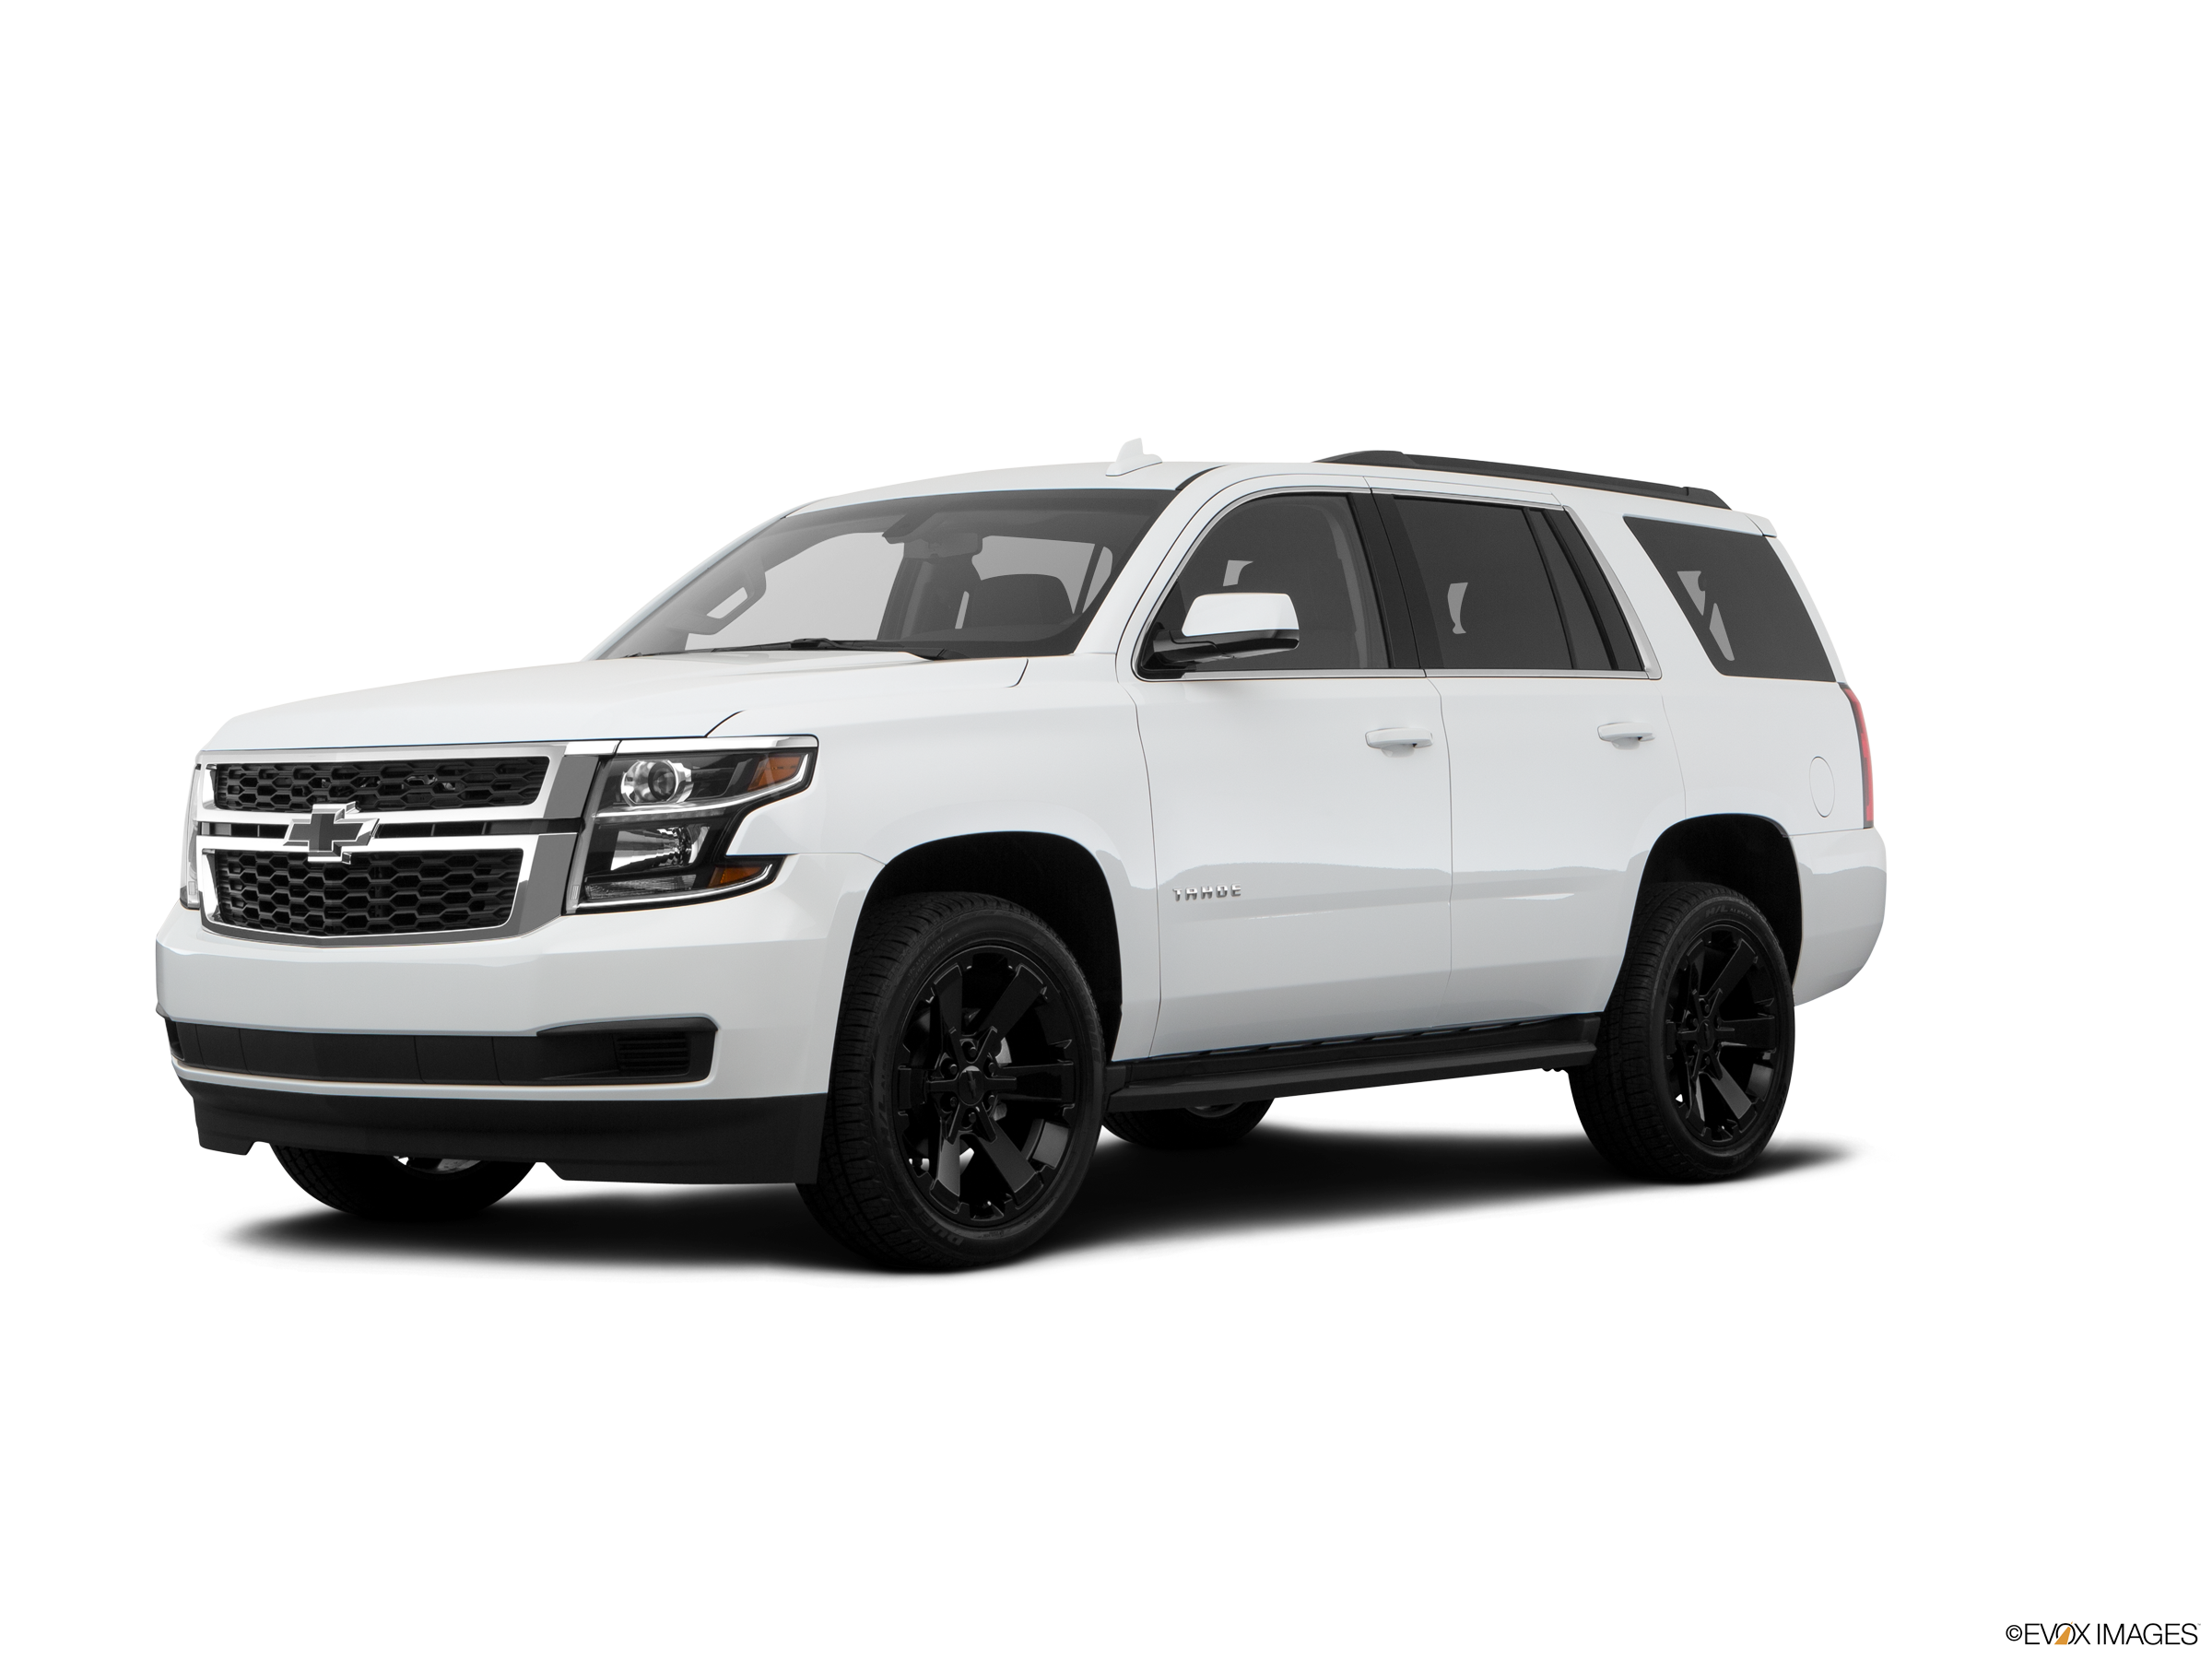 2018 Chevrolet Tahoe Values Cars For Sale Kelley Blue Book